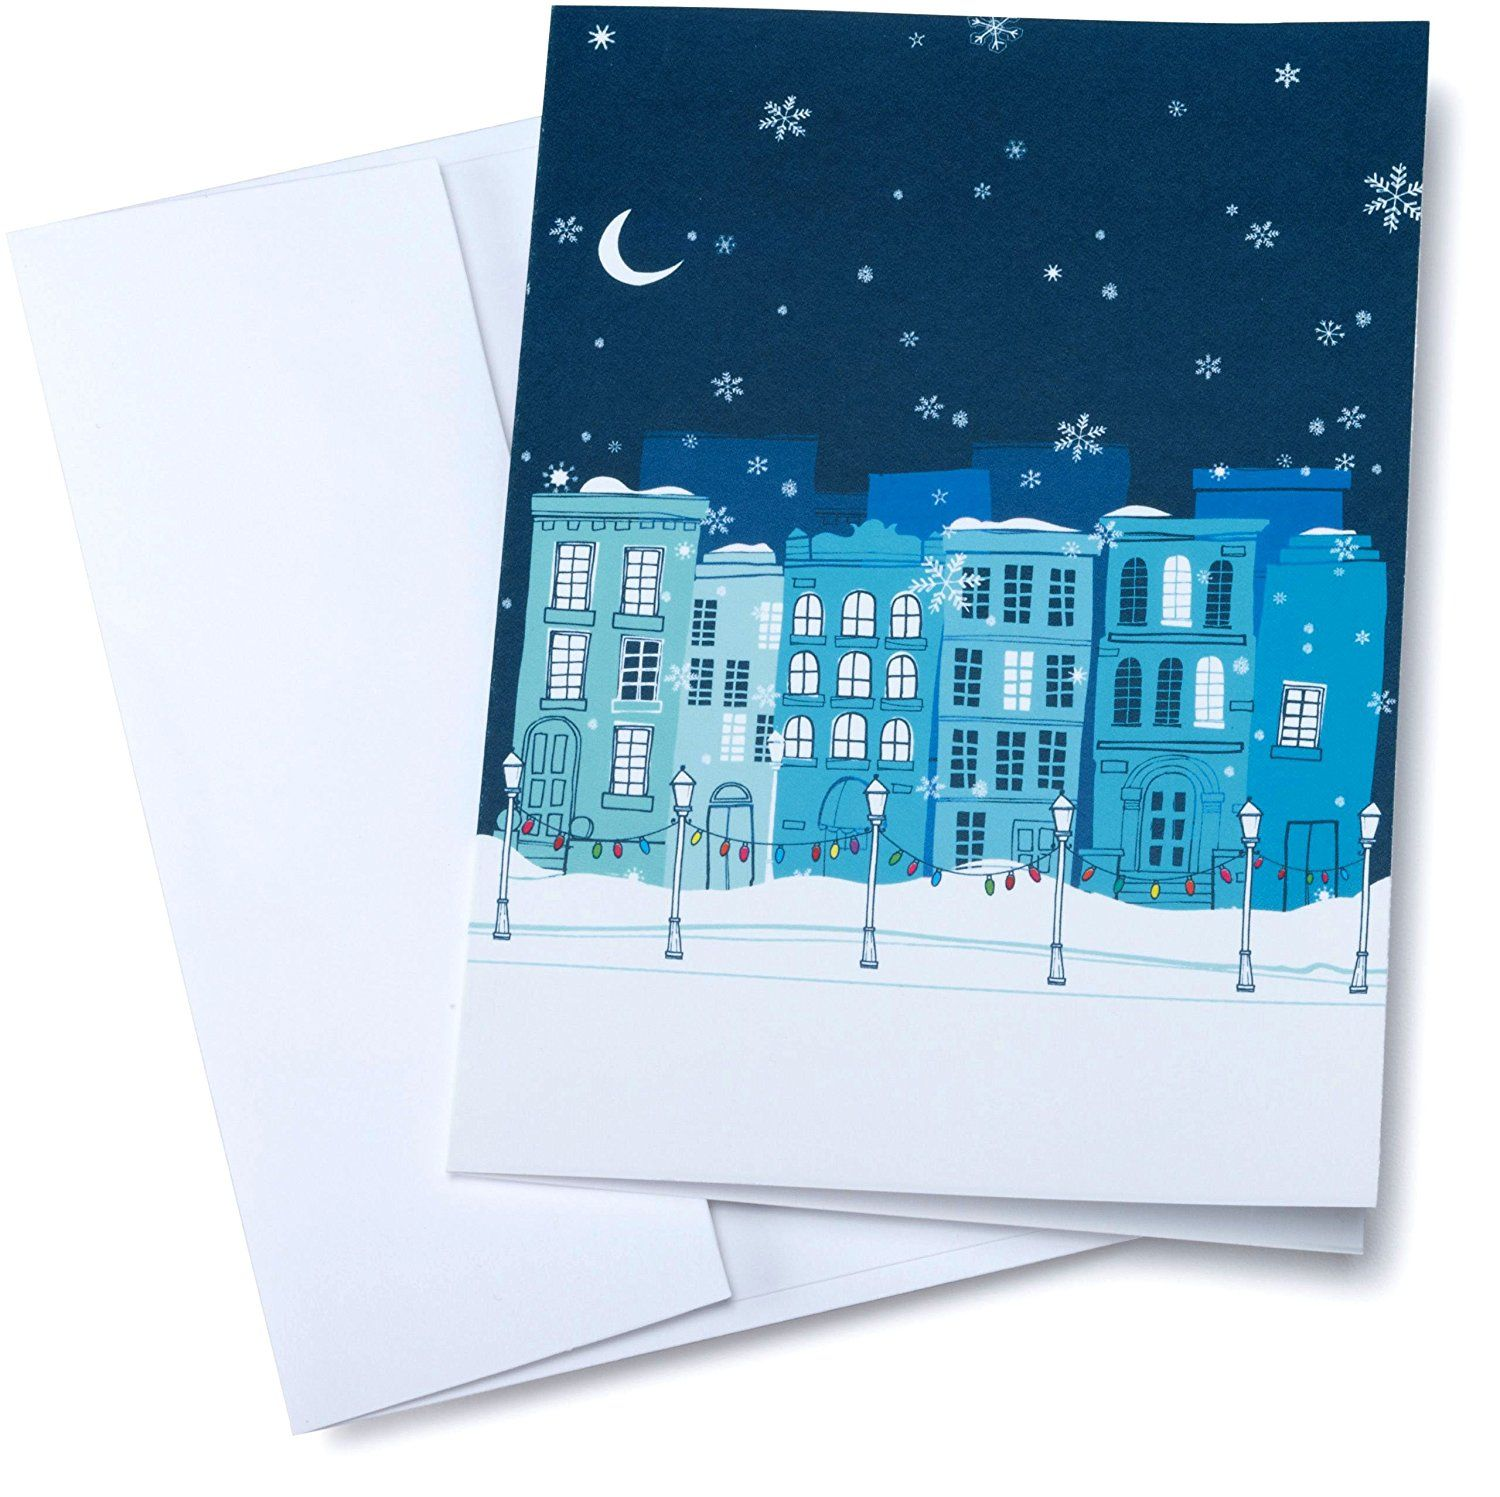 30 gift card in a greeting card winter design